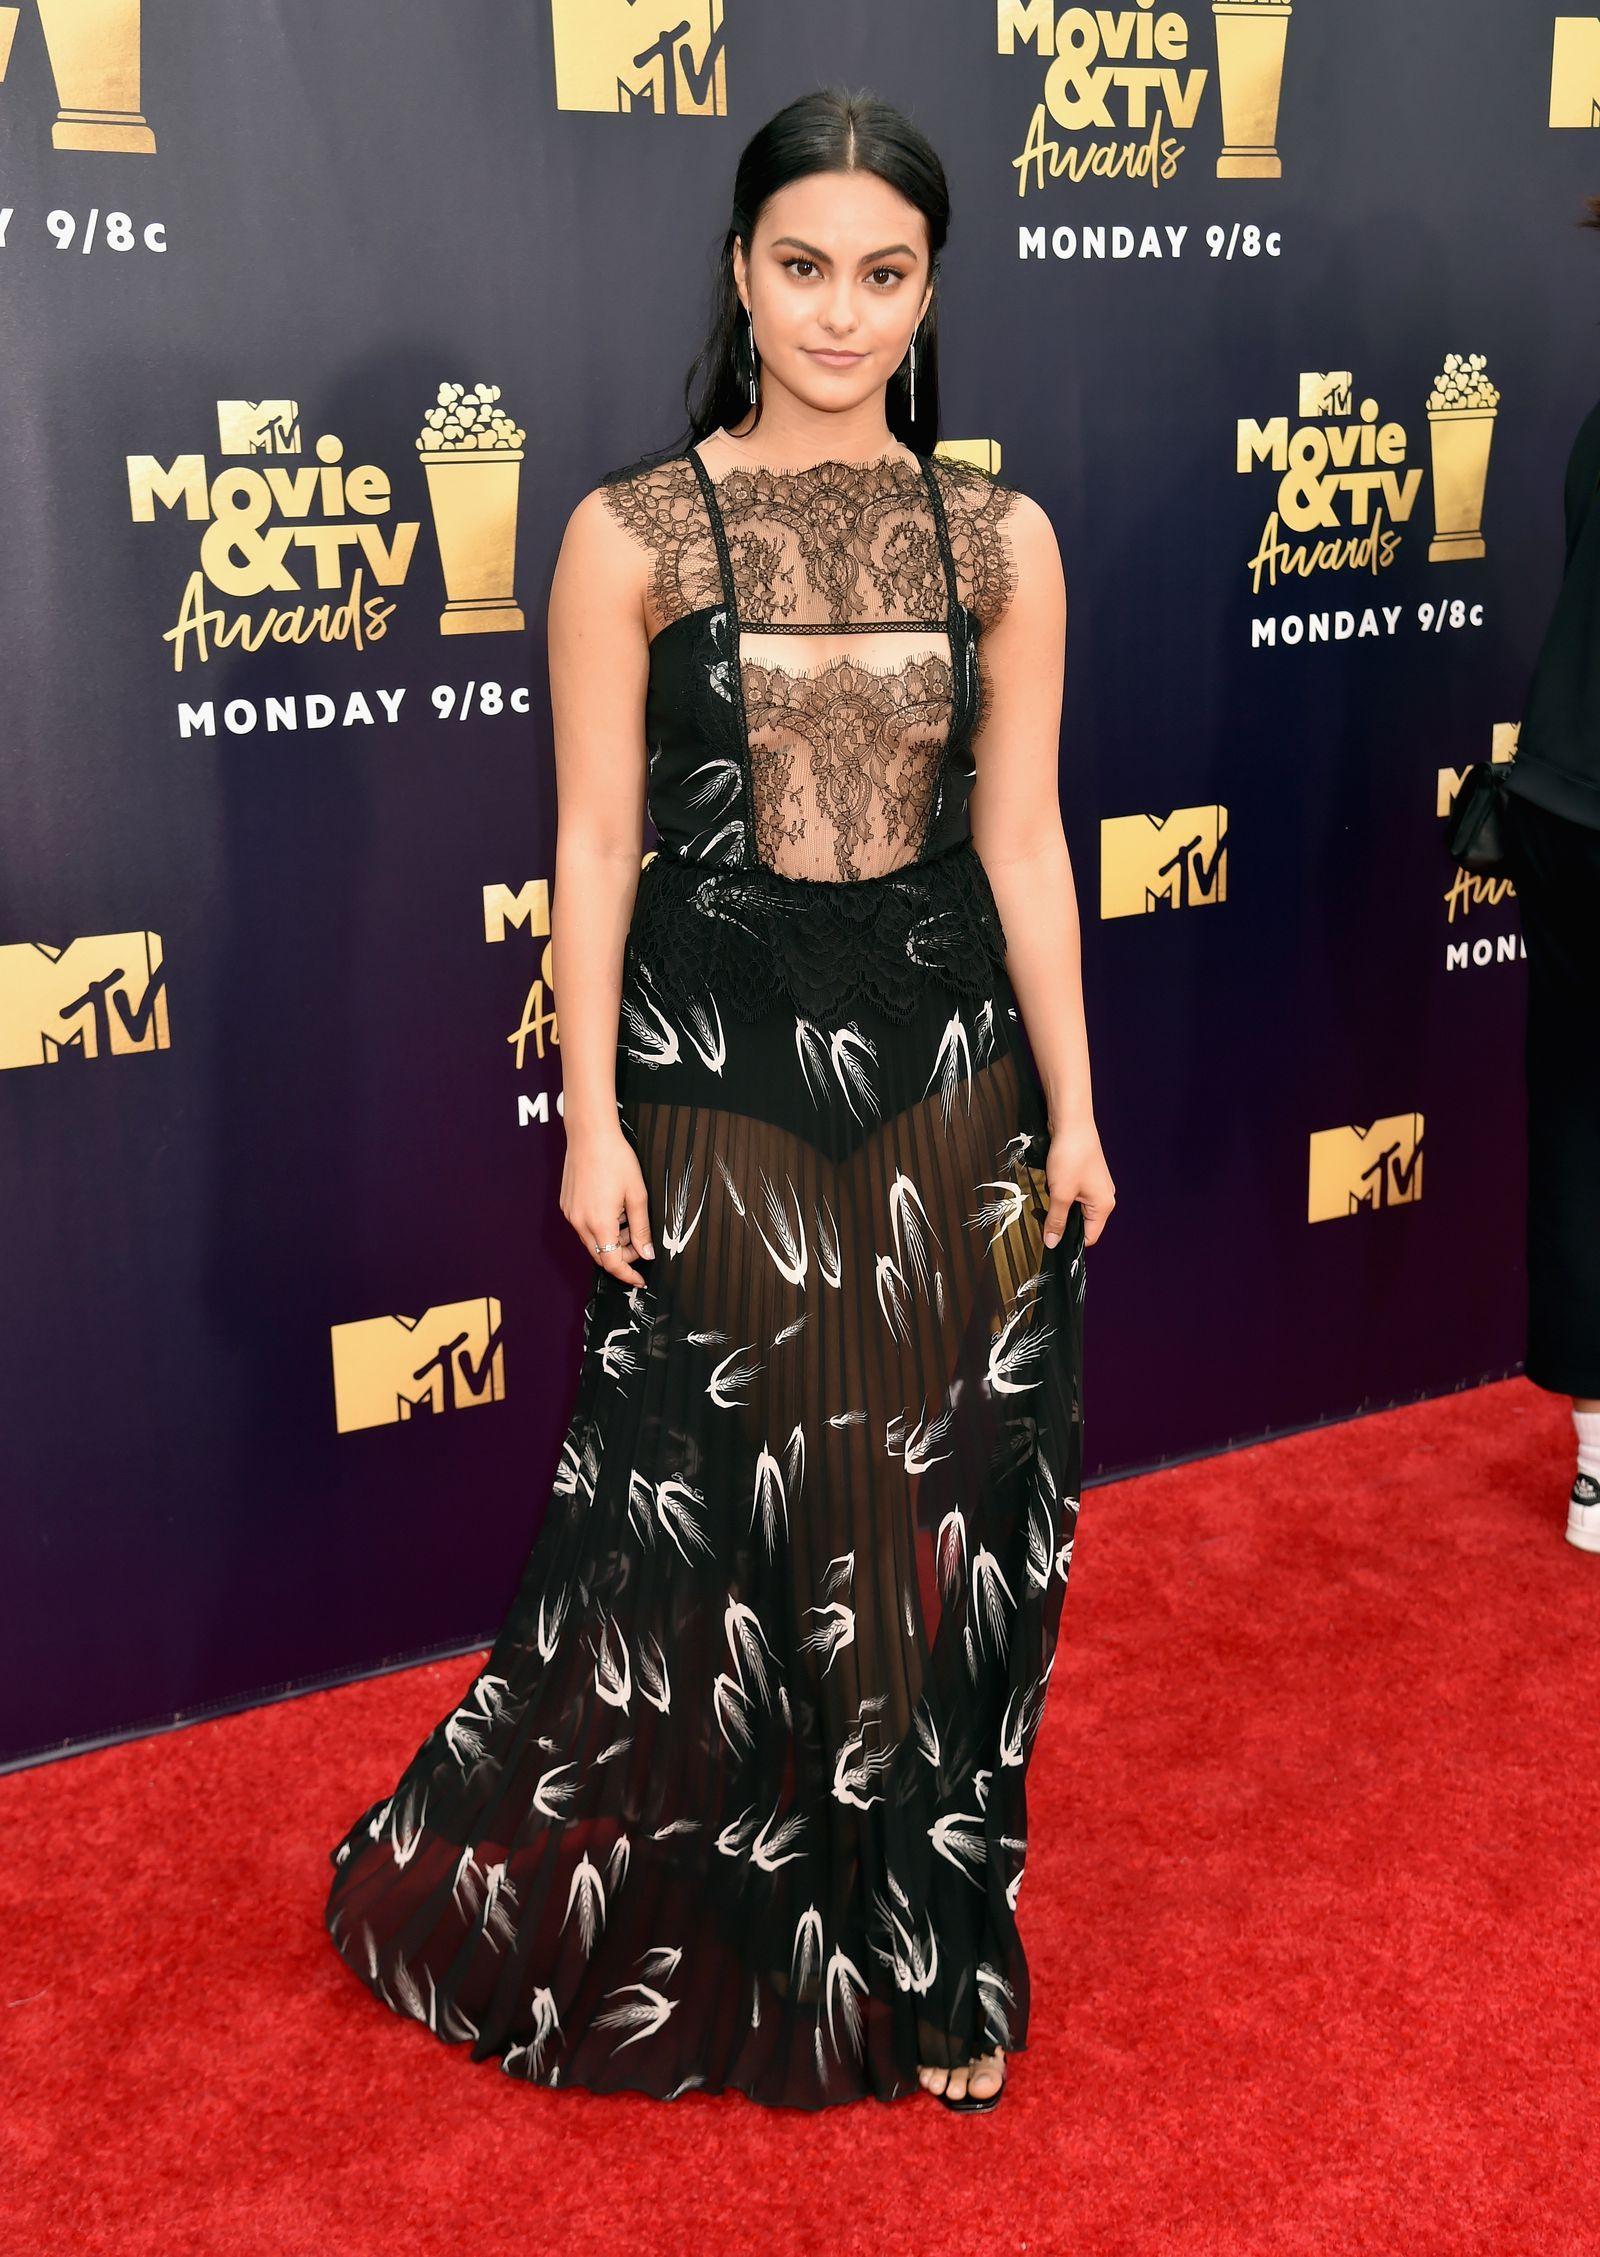 558cde63 Camila Mendes wearing an sheer embroidery bodice and a see thru printed  skirt at the MTV Movie & TV Awards 2018